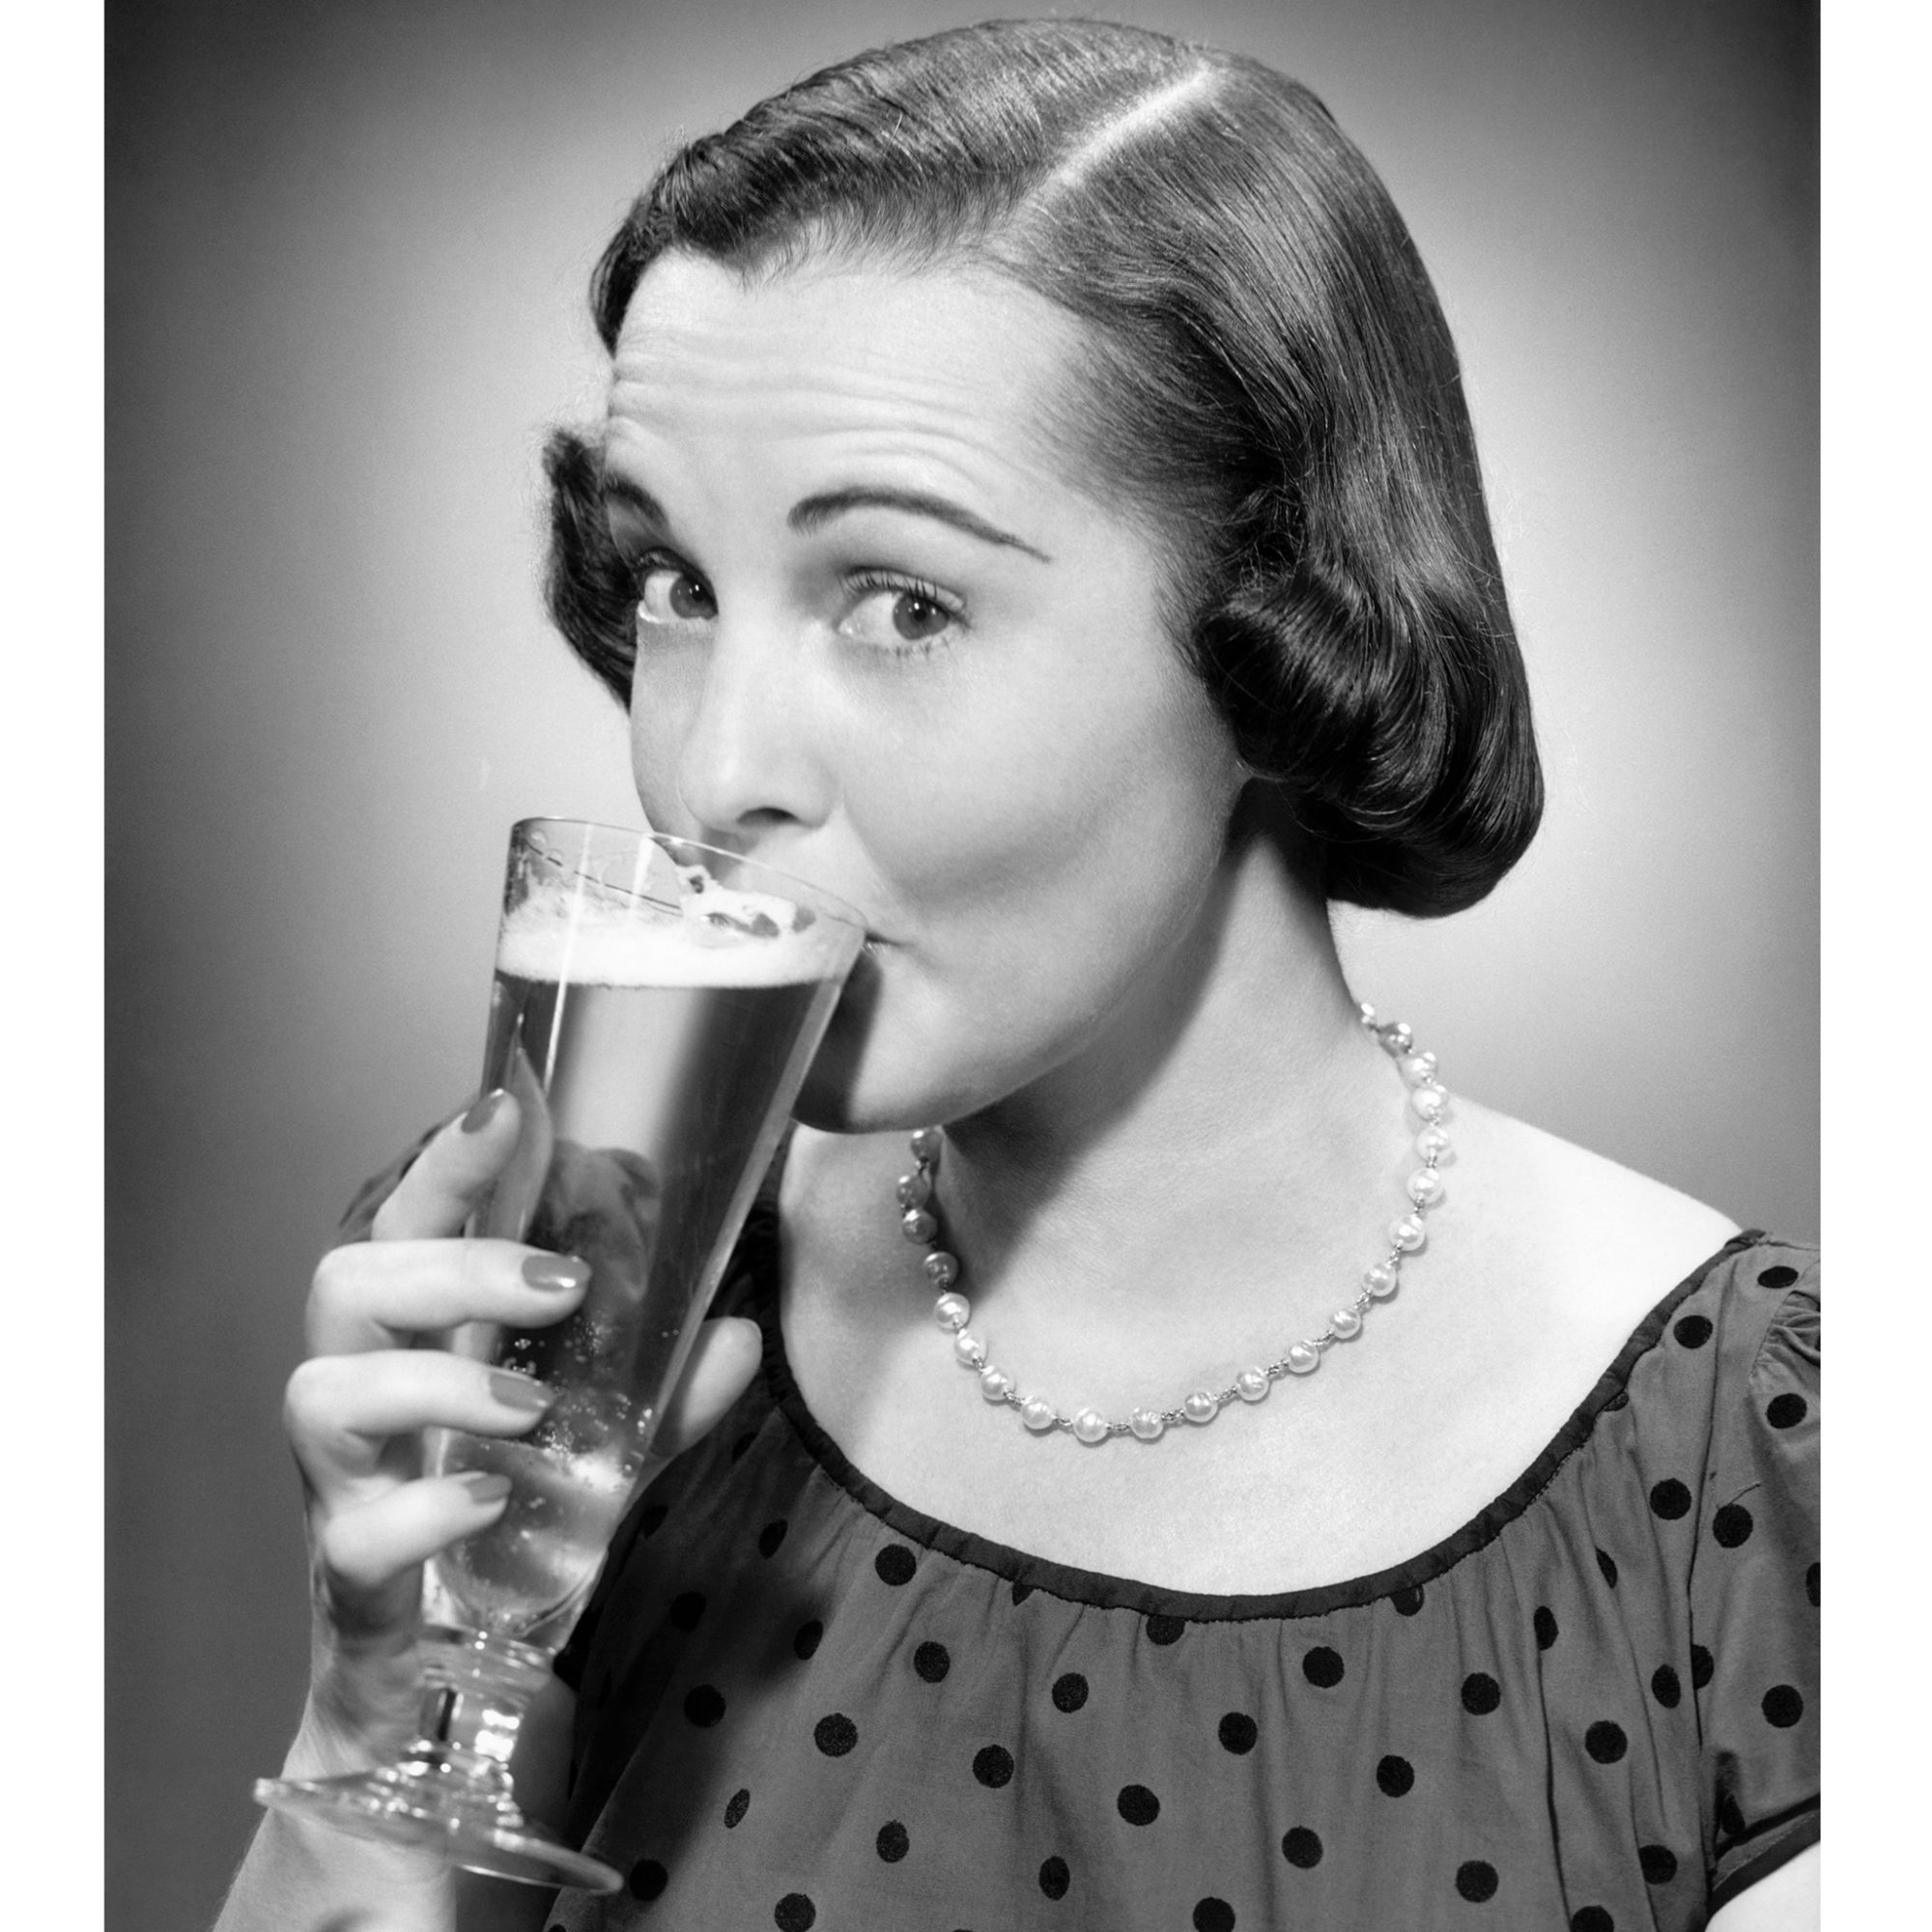 FWX WOMEN DRINKING BEER